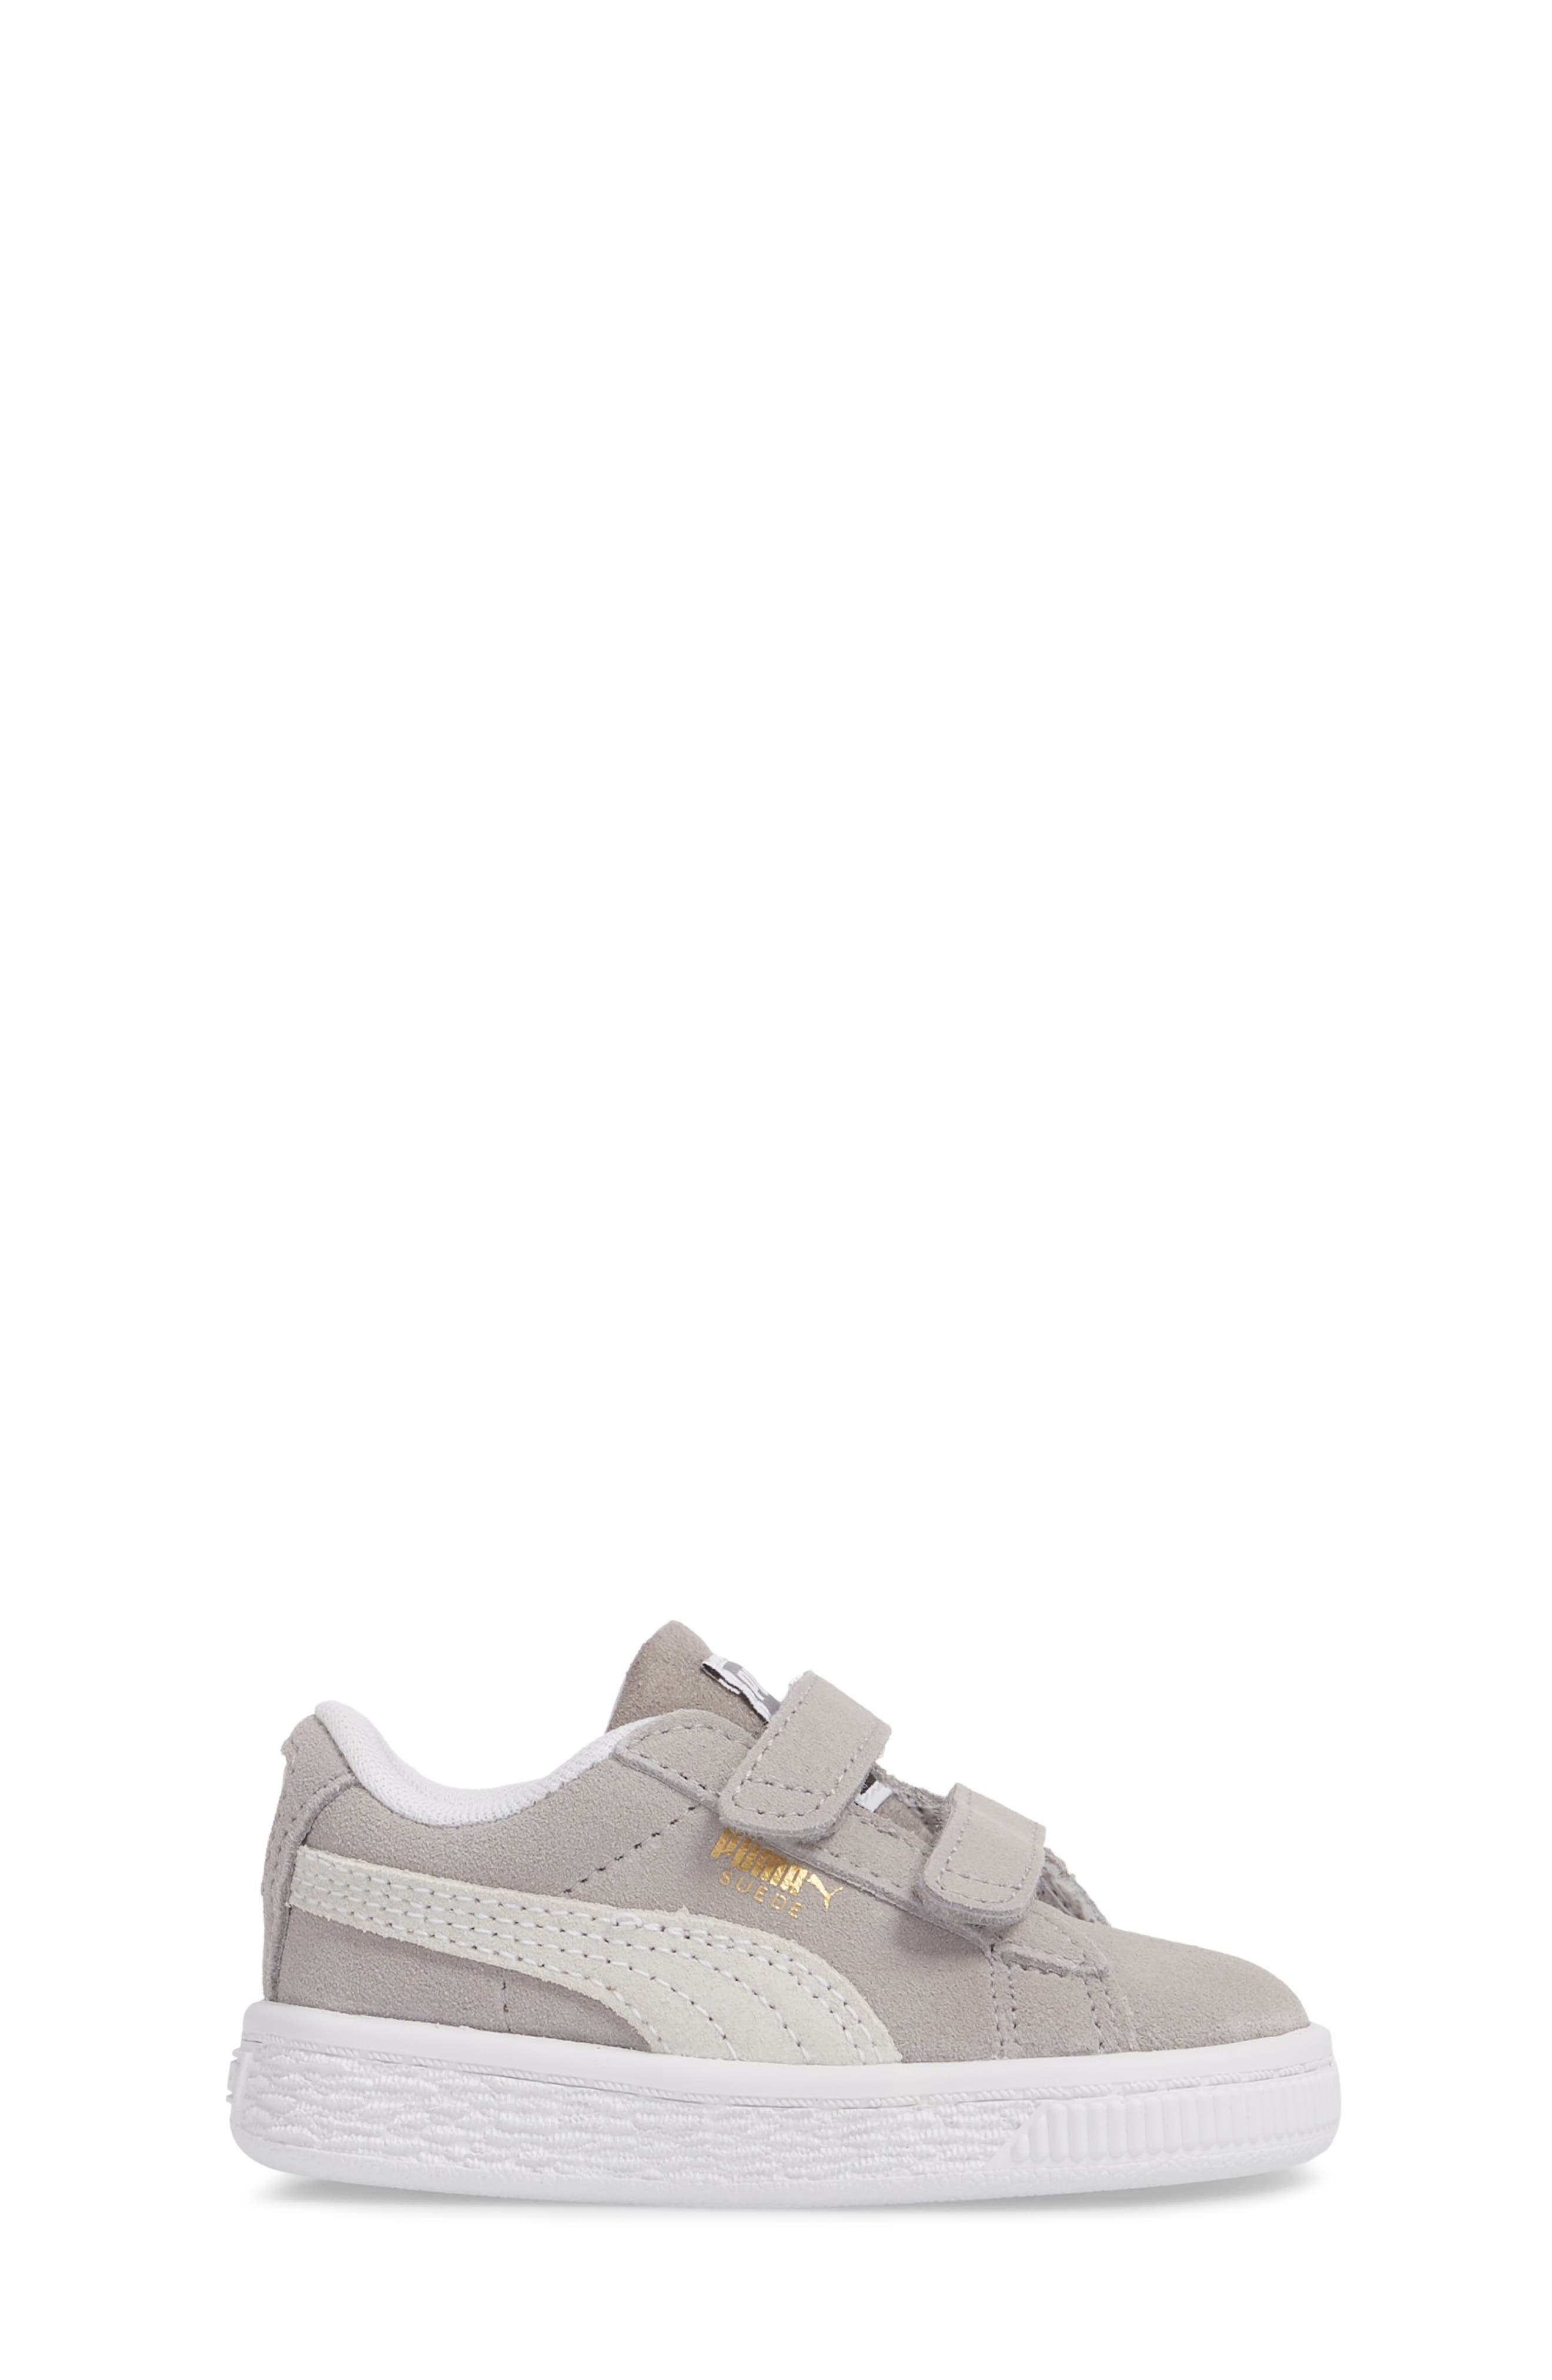 Suede Classic Sneaker,                             Alternate thumbnail 3, color,                             250